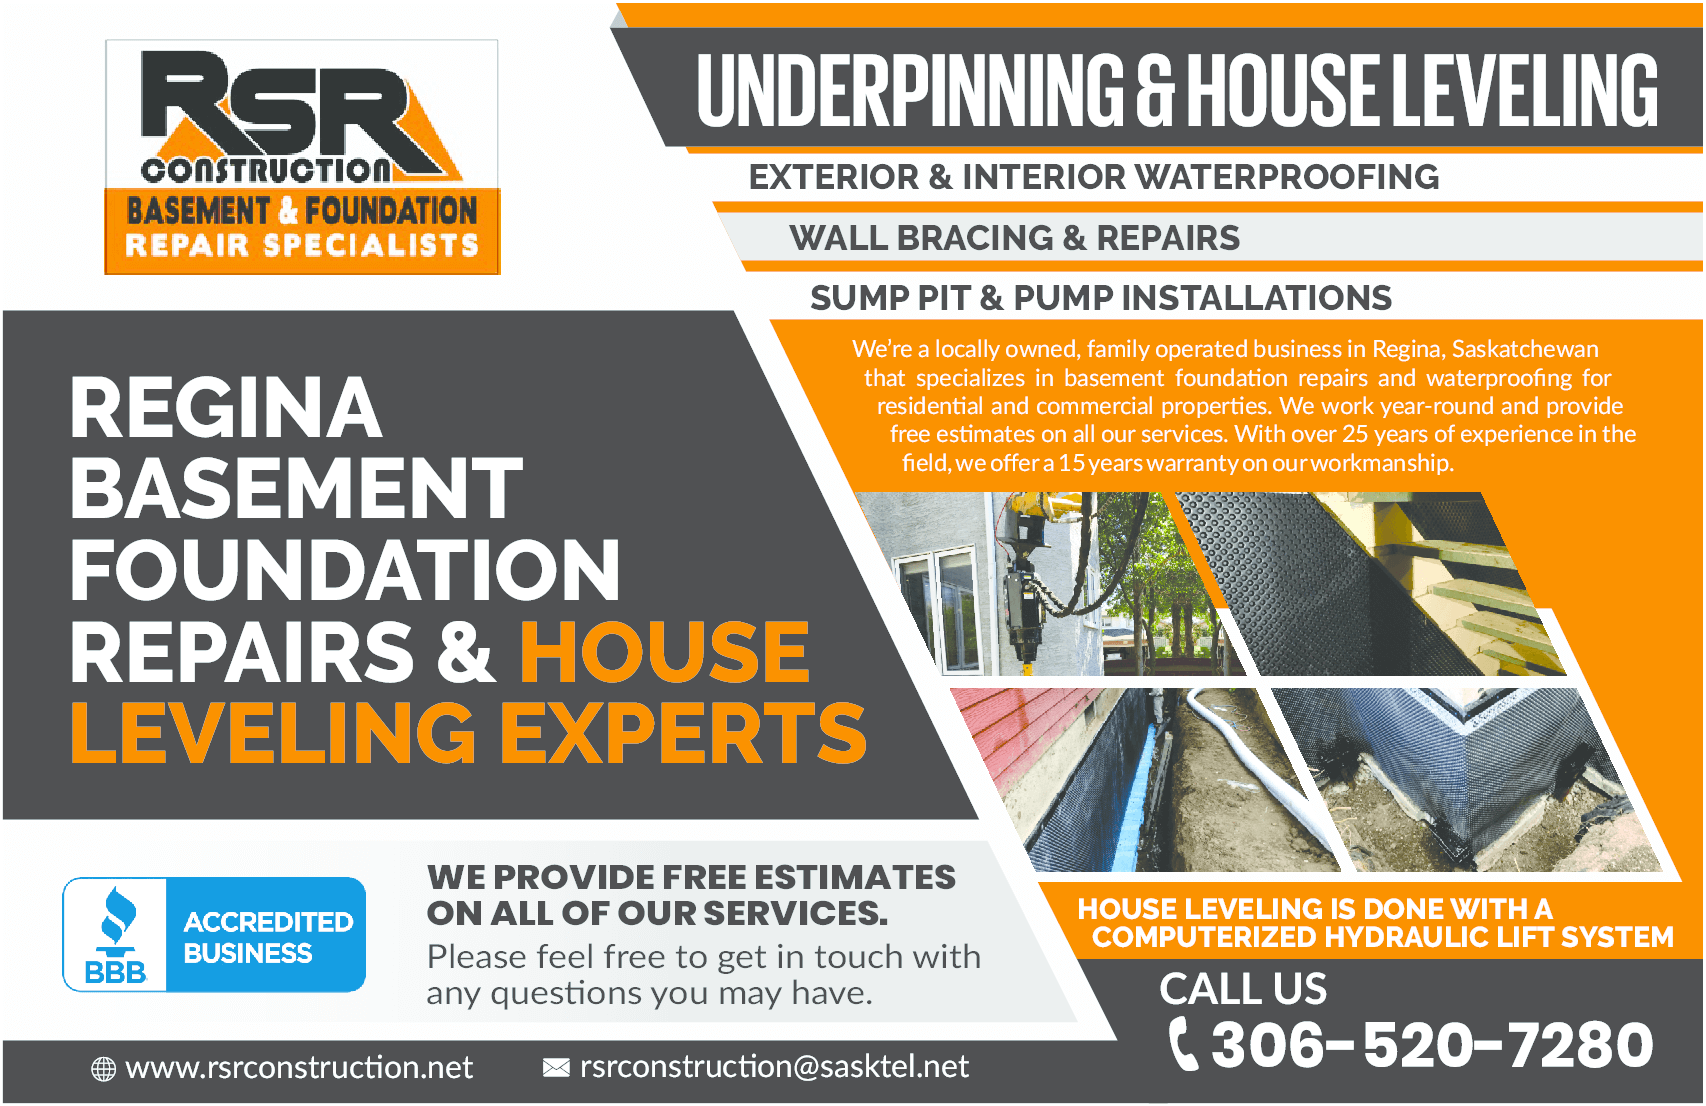 RSR Construction Flyer